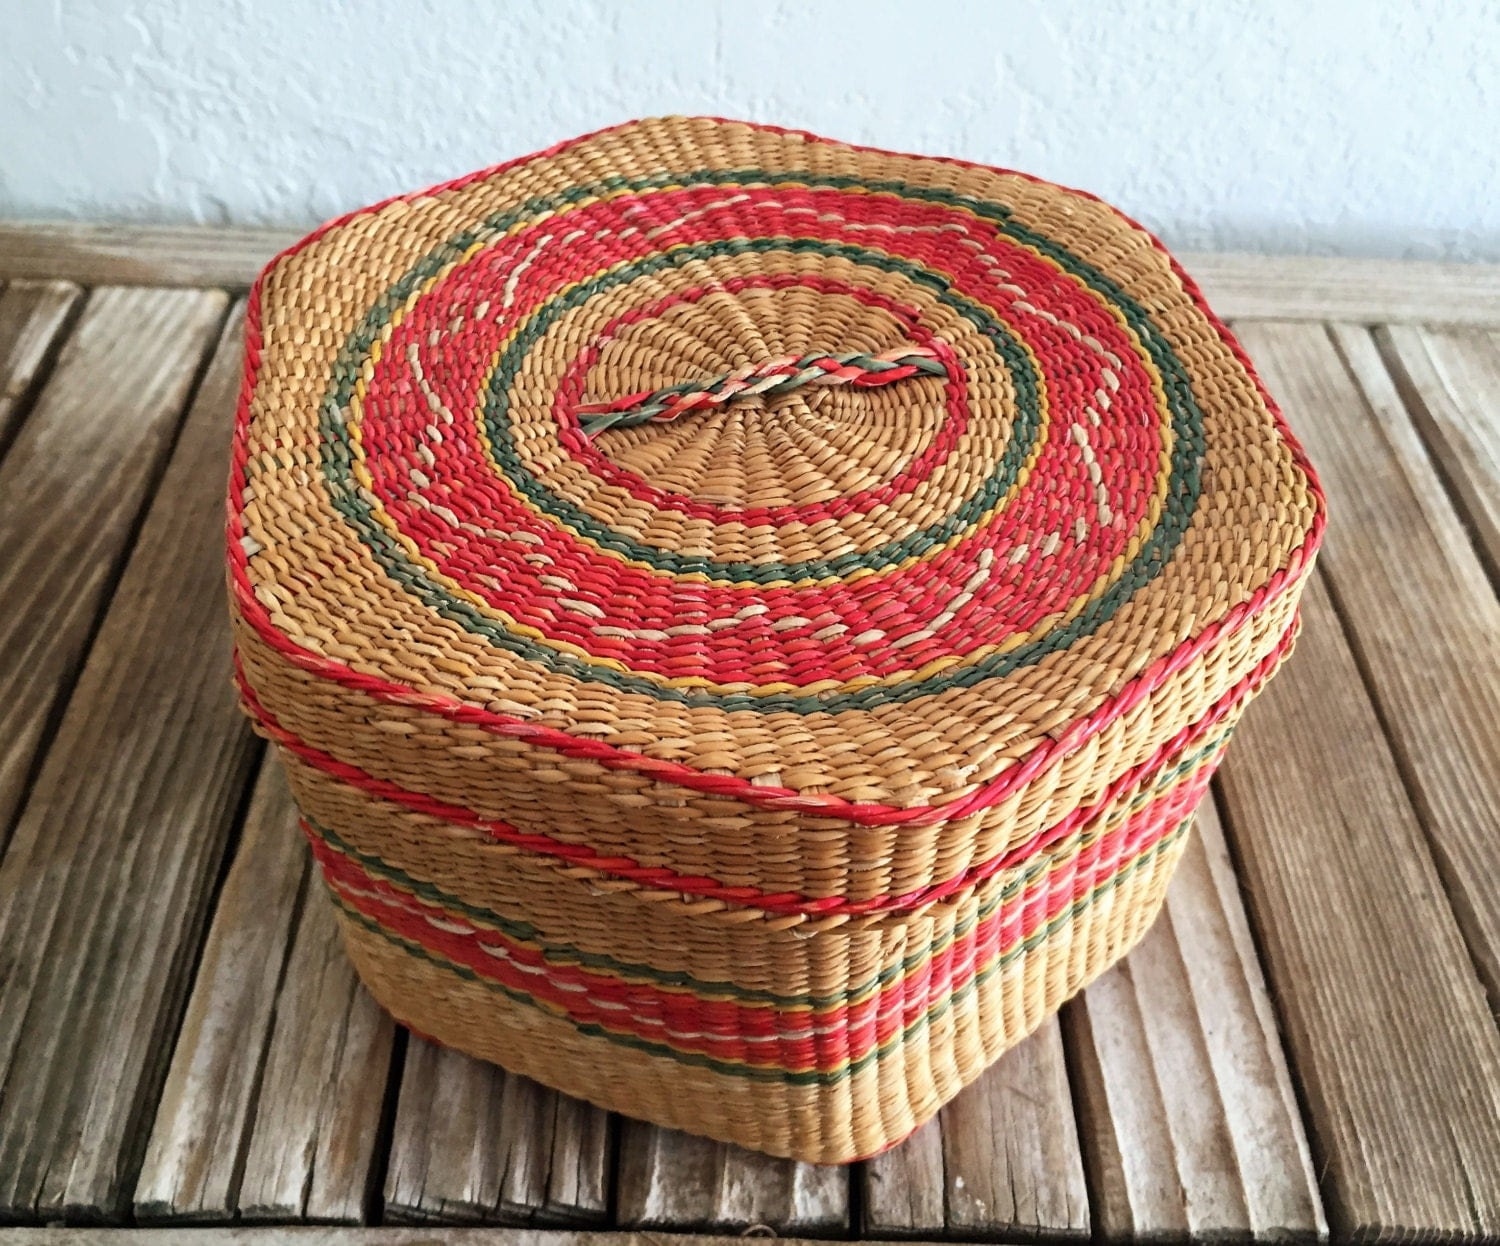 How To Weave A Sweetgrass Basket : Vintage woven sweet grass basket